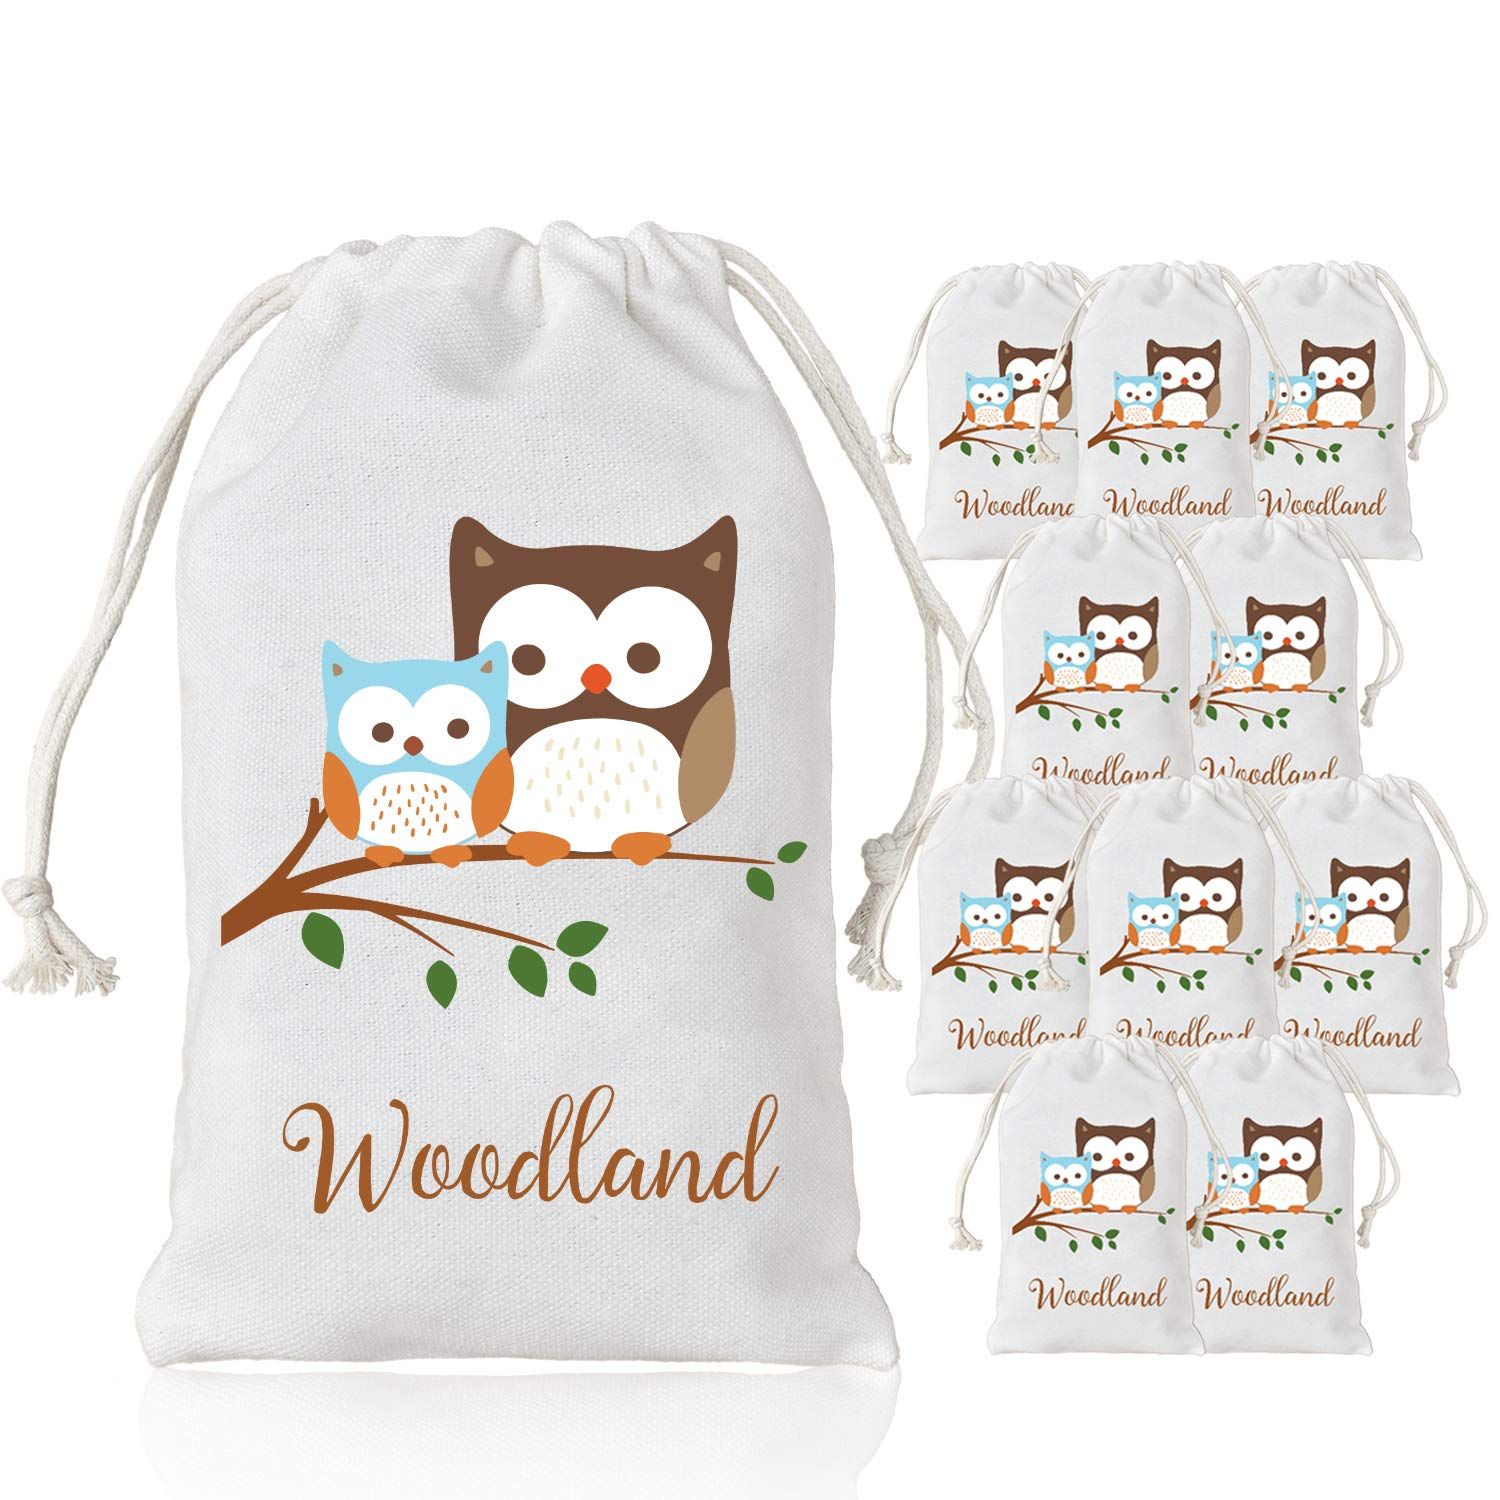 Kreatwow Woodland Party Supplies Favor Bags Baby Shower Birthday Candy Gift Goody Bags Owl Design 10 Pack